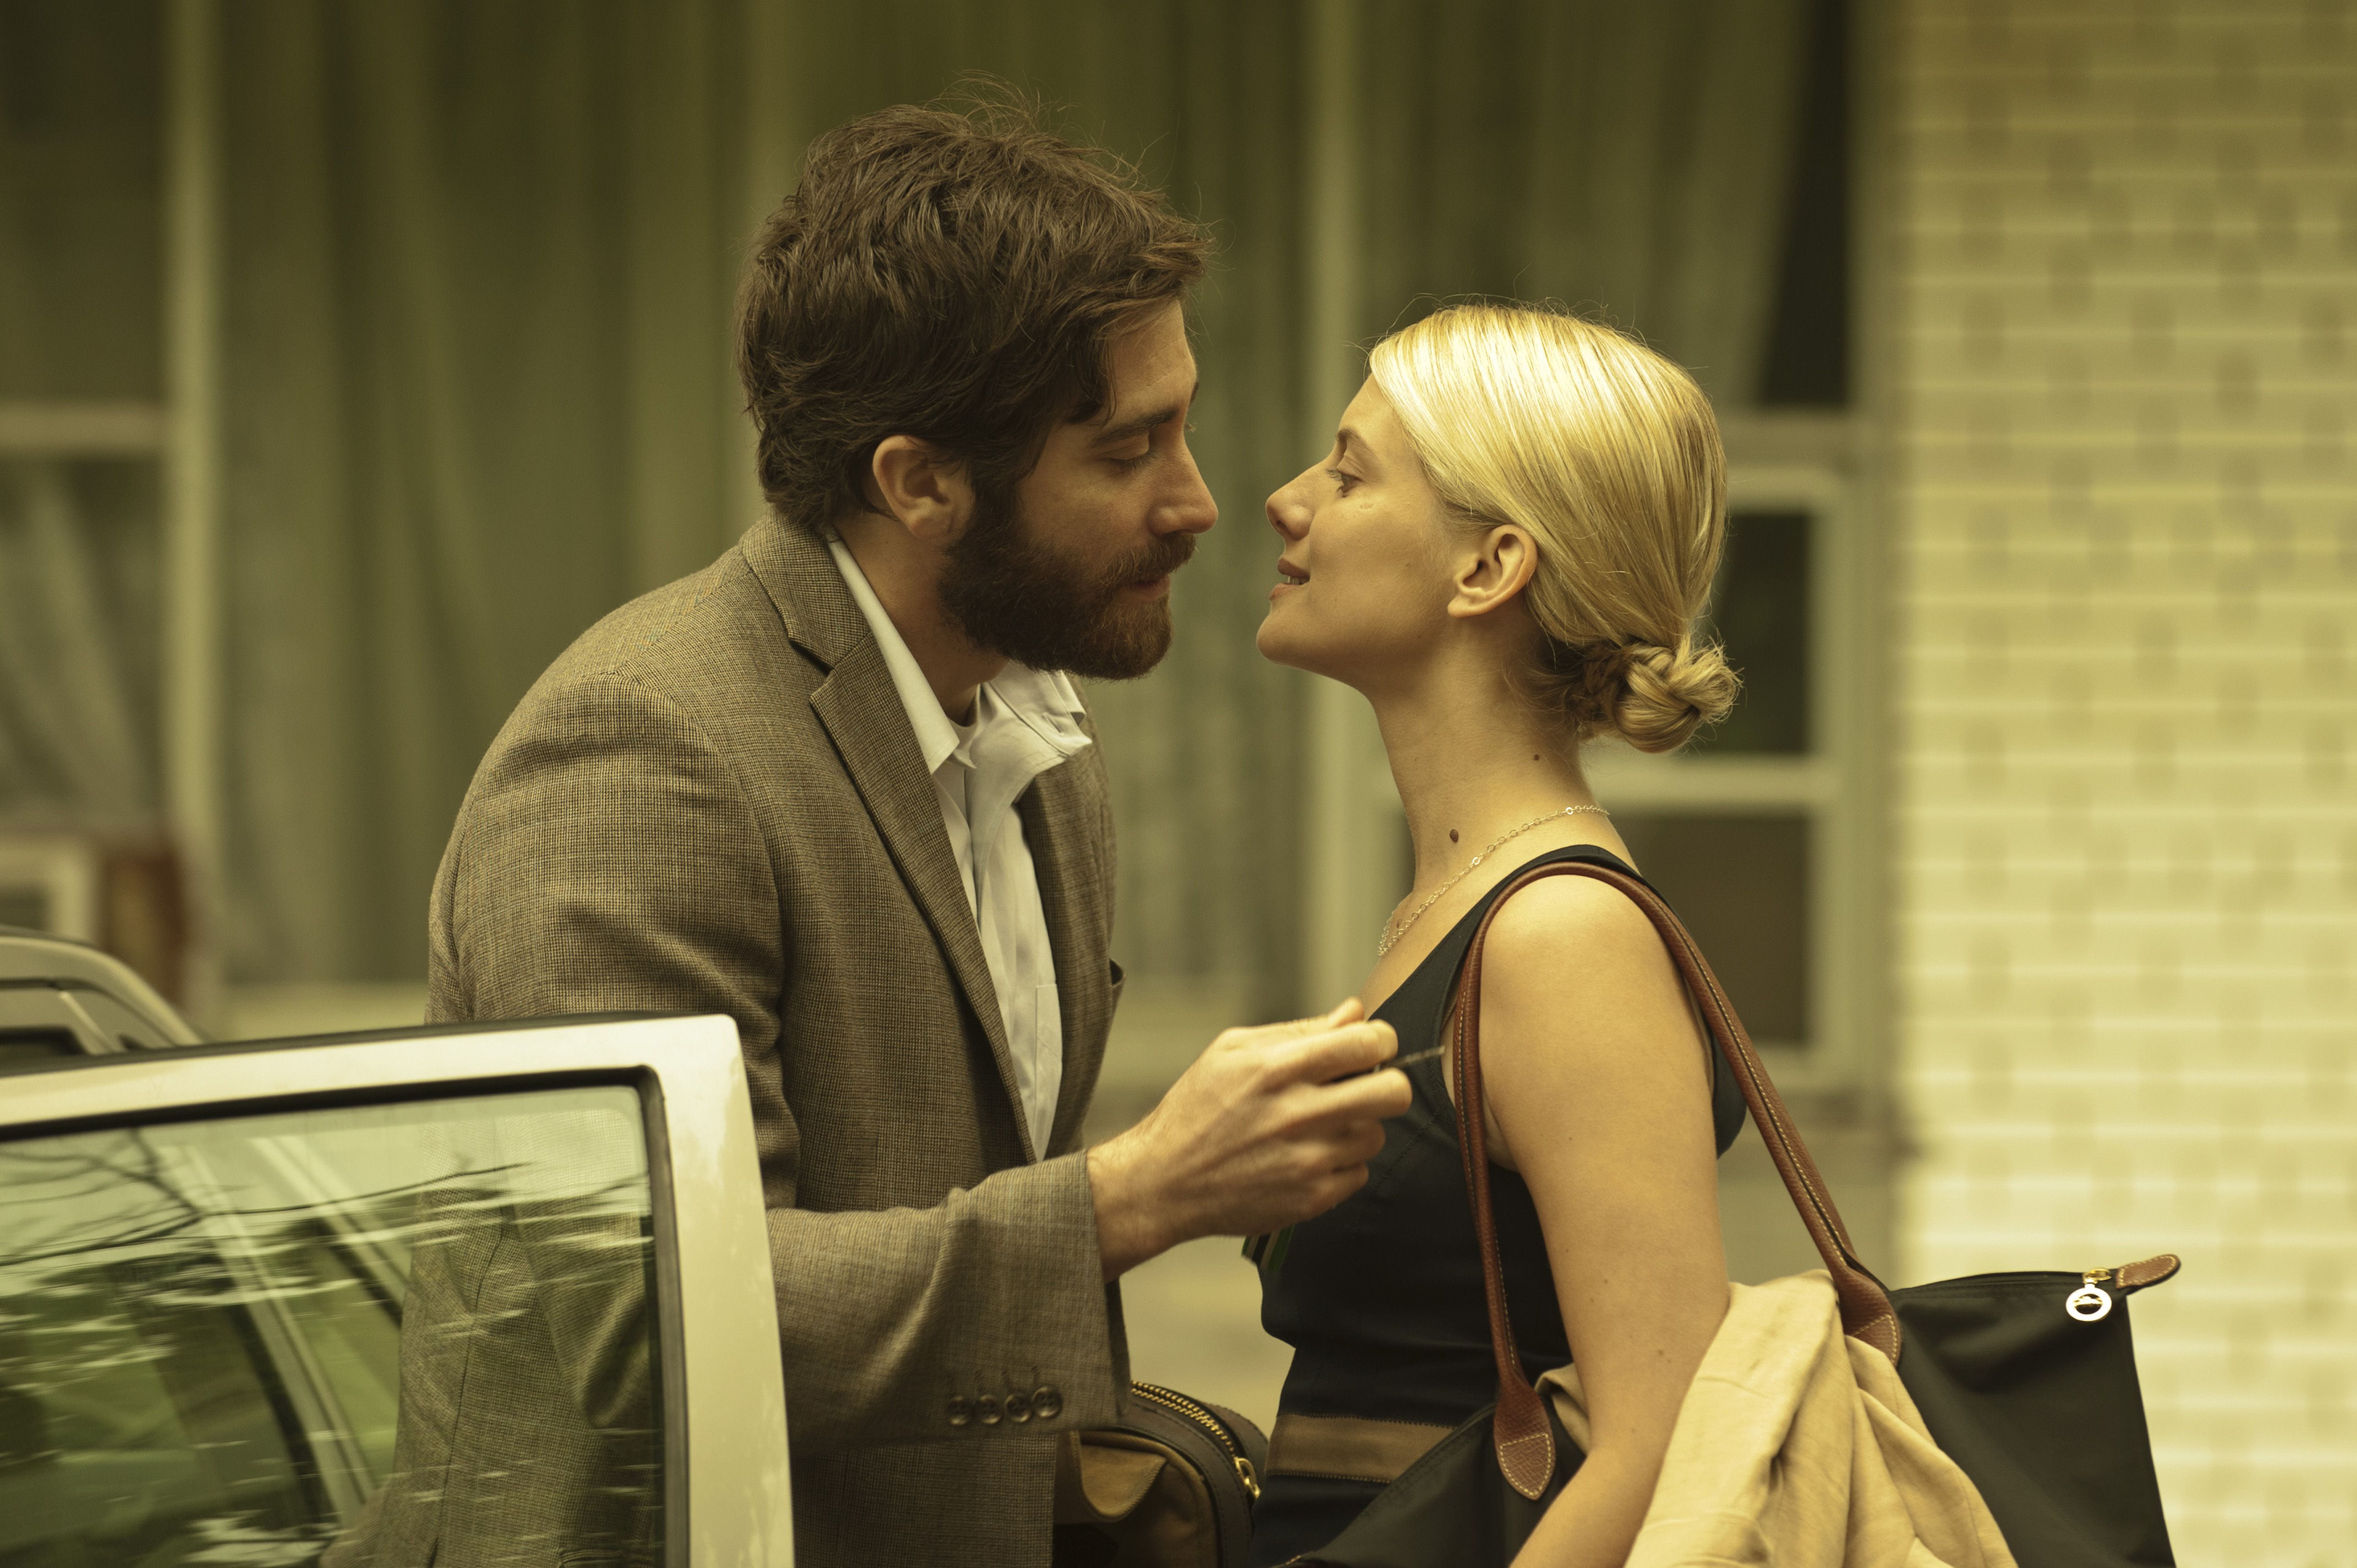 Mélanie Laurent and Jake Gyllenhaal in